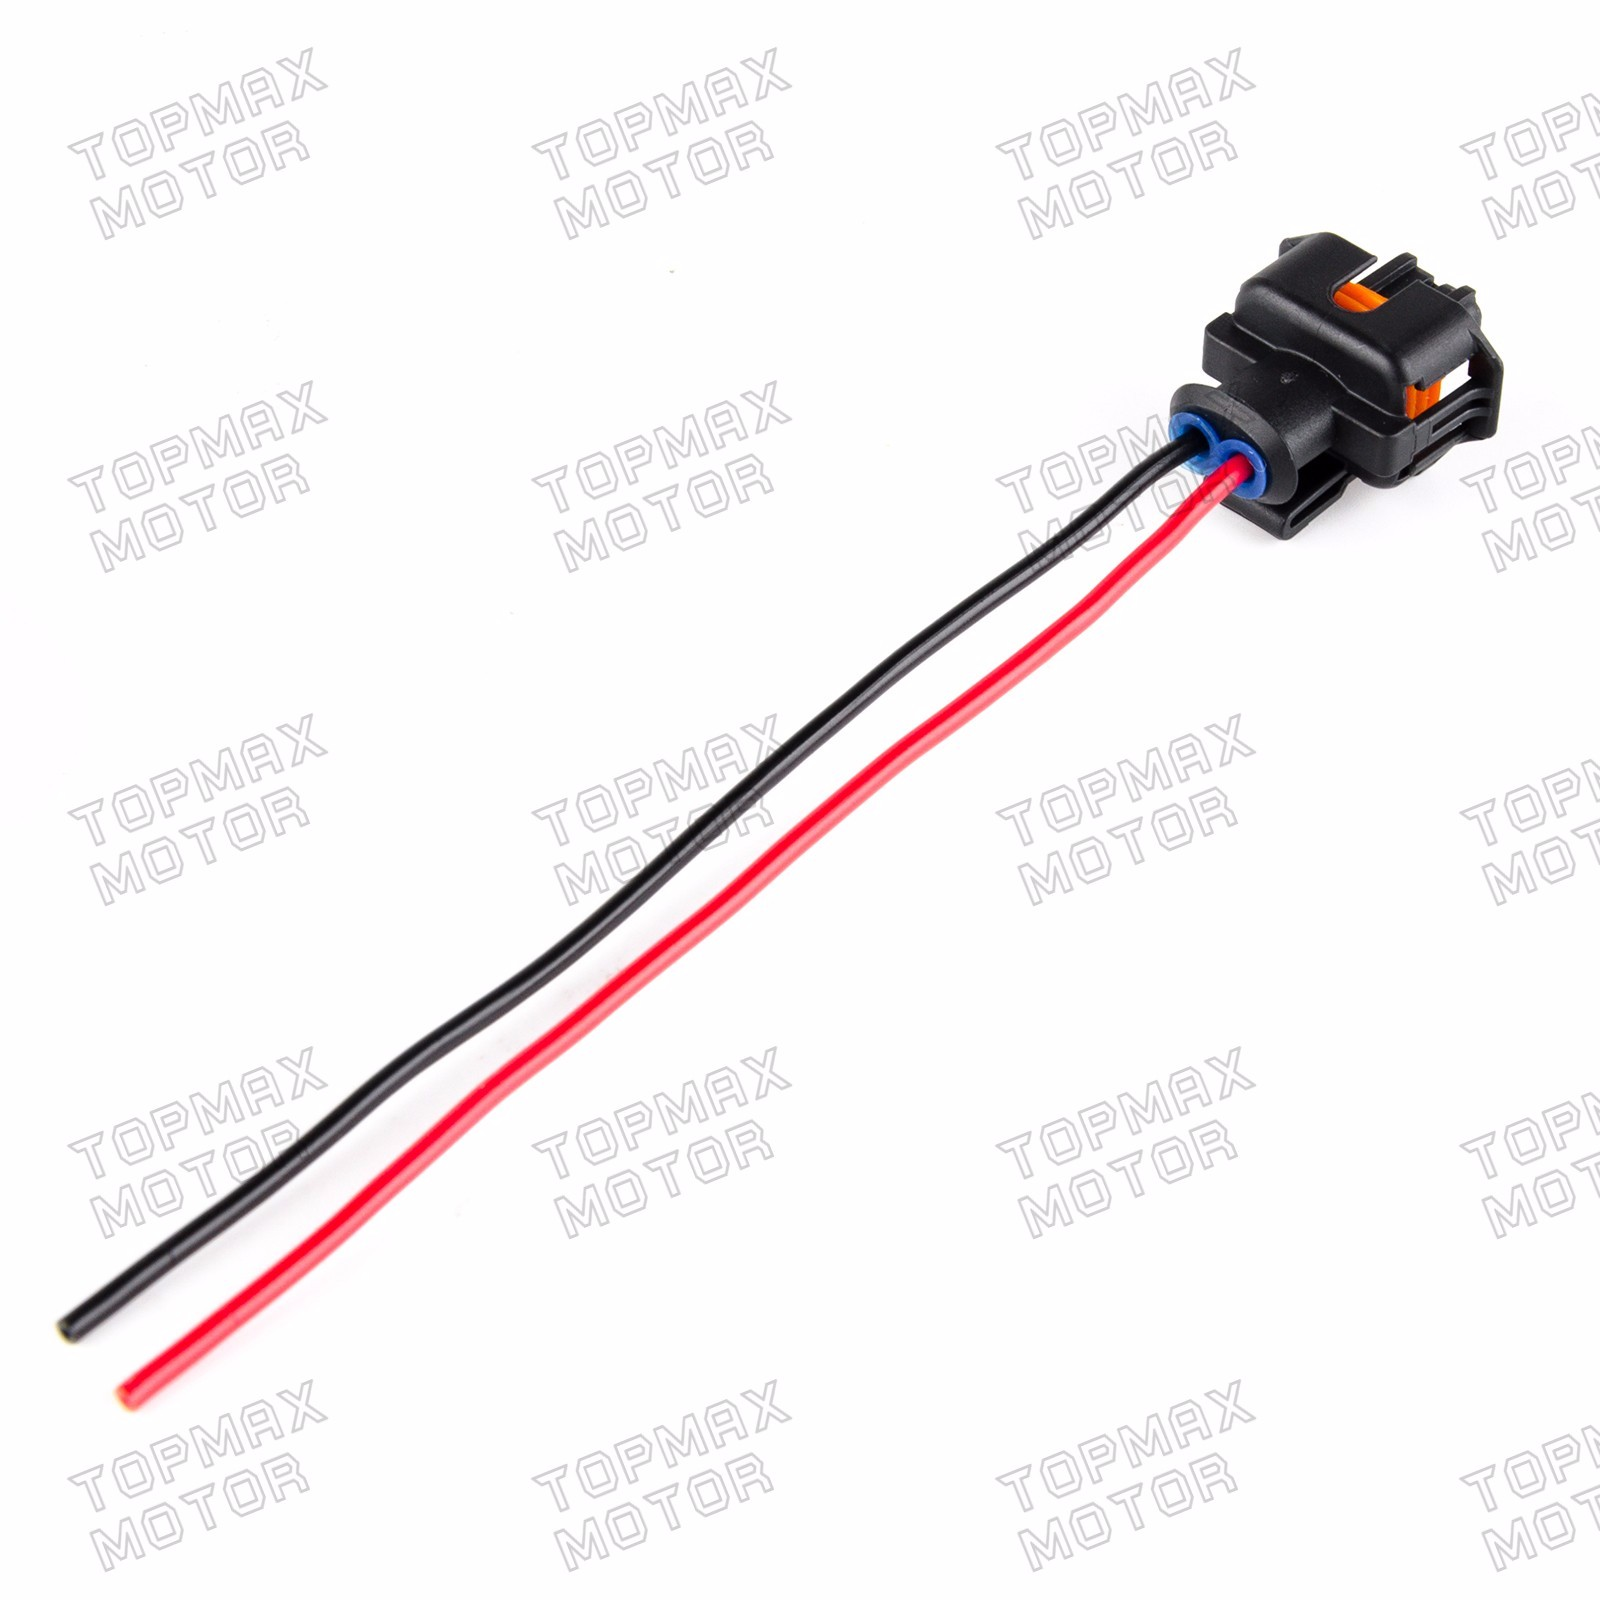 For Vauxhall 1.9 Diesel Fuel Injector Connector Harness